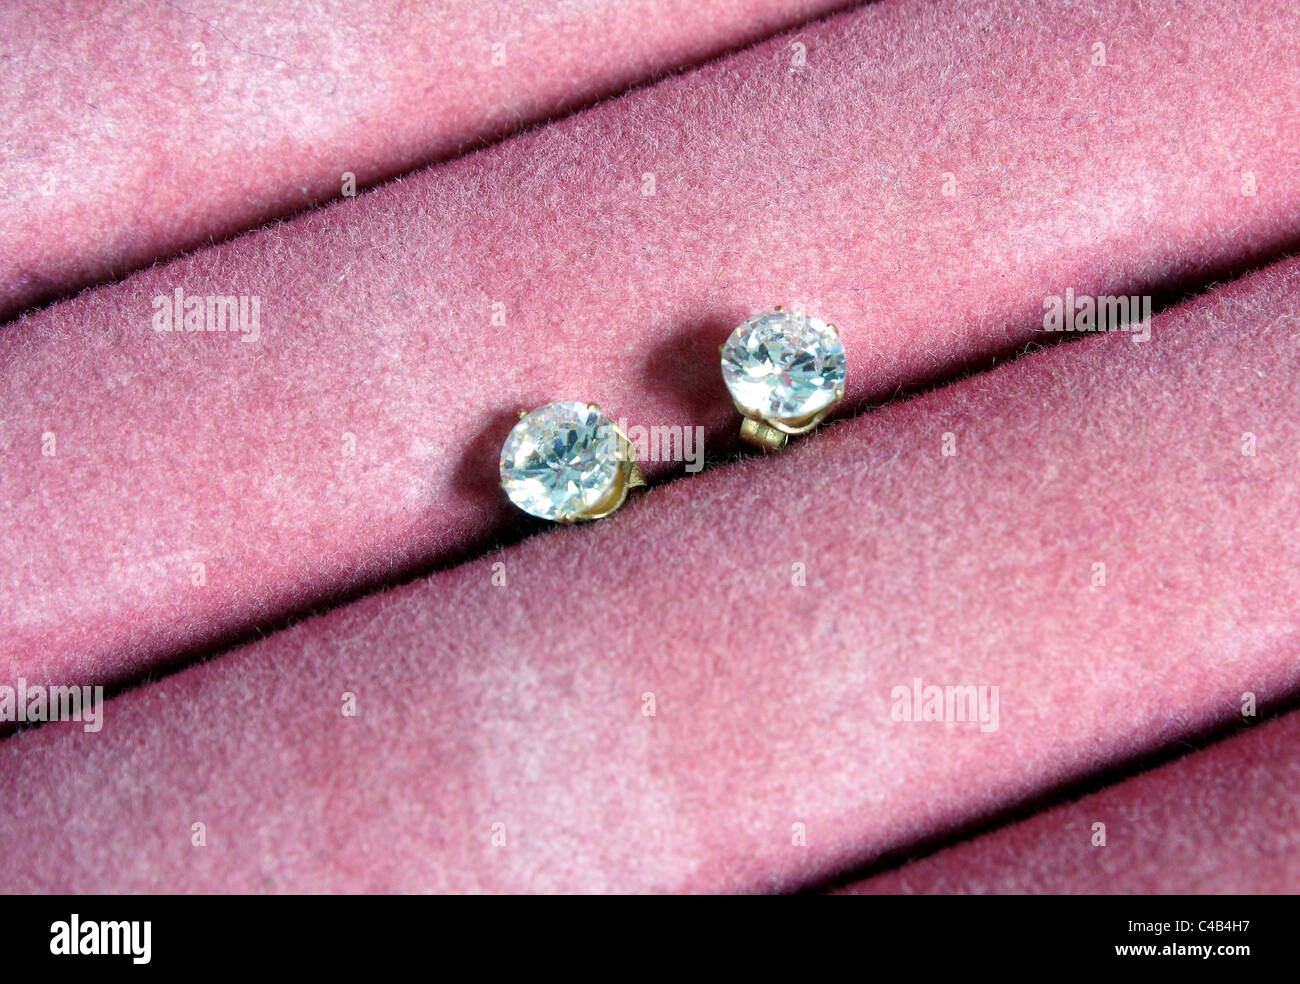 Stud Earrings Stock Photos & Stud Earrings Stock Images - Alamy